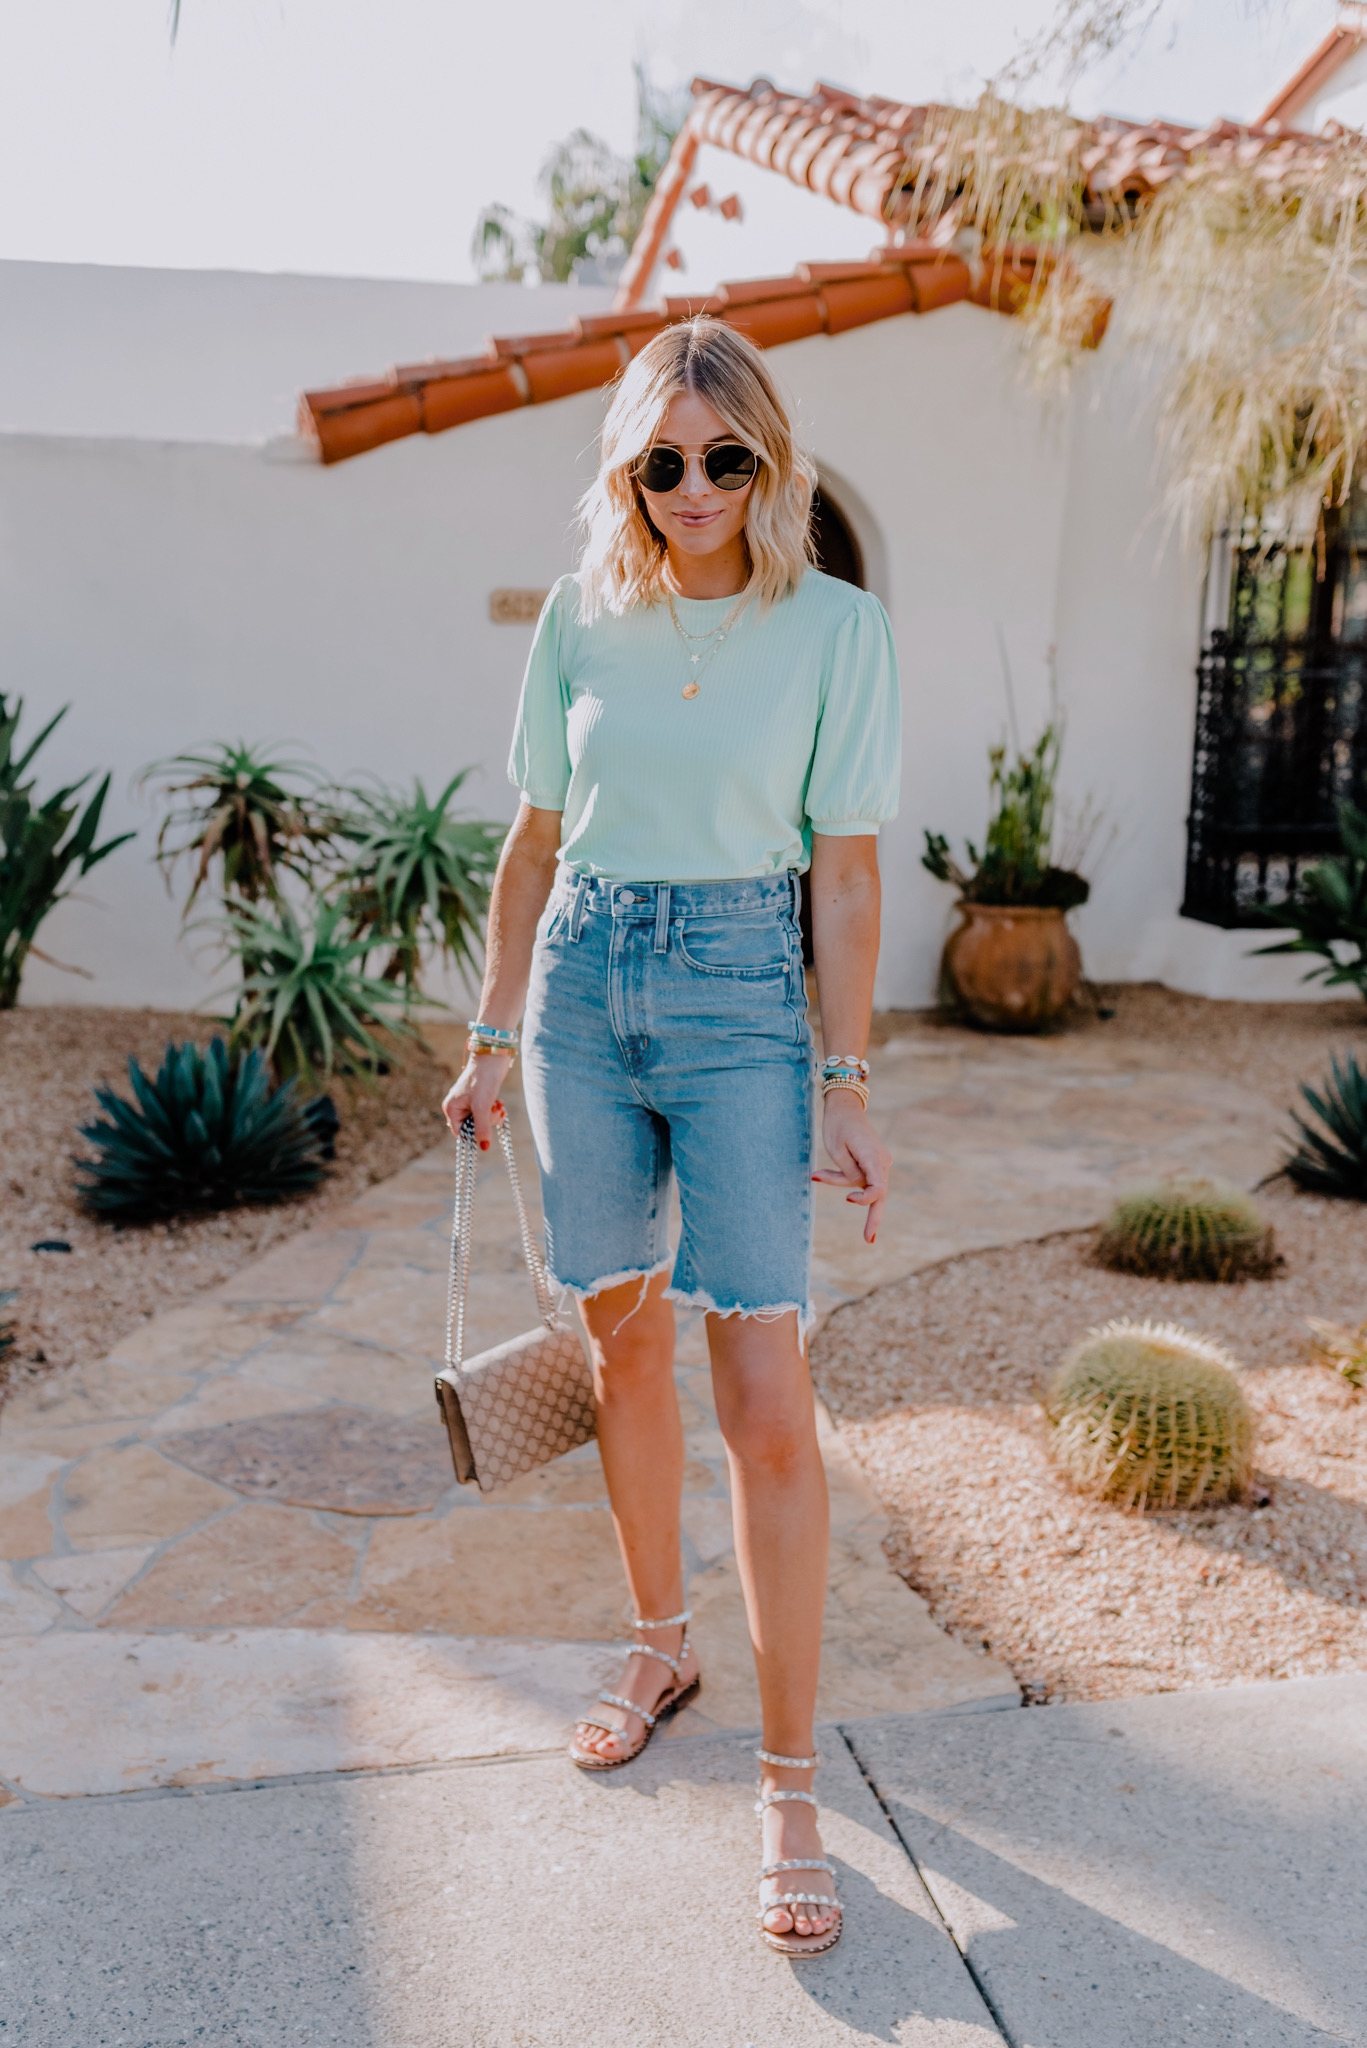 Summer Handbags by popular San Diego fashion blog, Navy Grace: image of a woman standing outside on a stone walkway and wearing a Asos Pieces ribbed top with puff sleeves in mint green, ShopBop Madewell High Rise Midi Length Jean Shorts, Nordstrom Transport Studded Strappy Sandal STEVE MADDEN, Ray-Ban sunglasses, and holding a Gucci Dionysus GG Supreme mini bag.